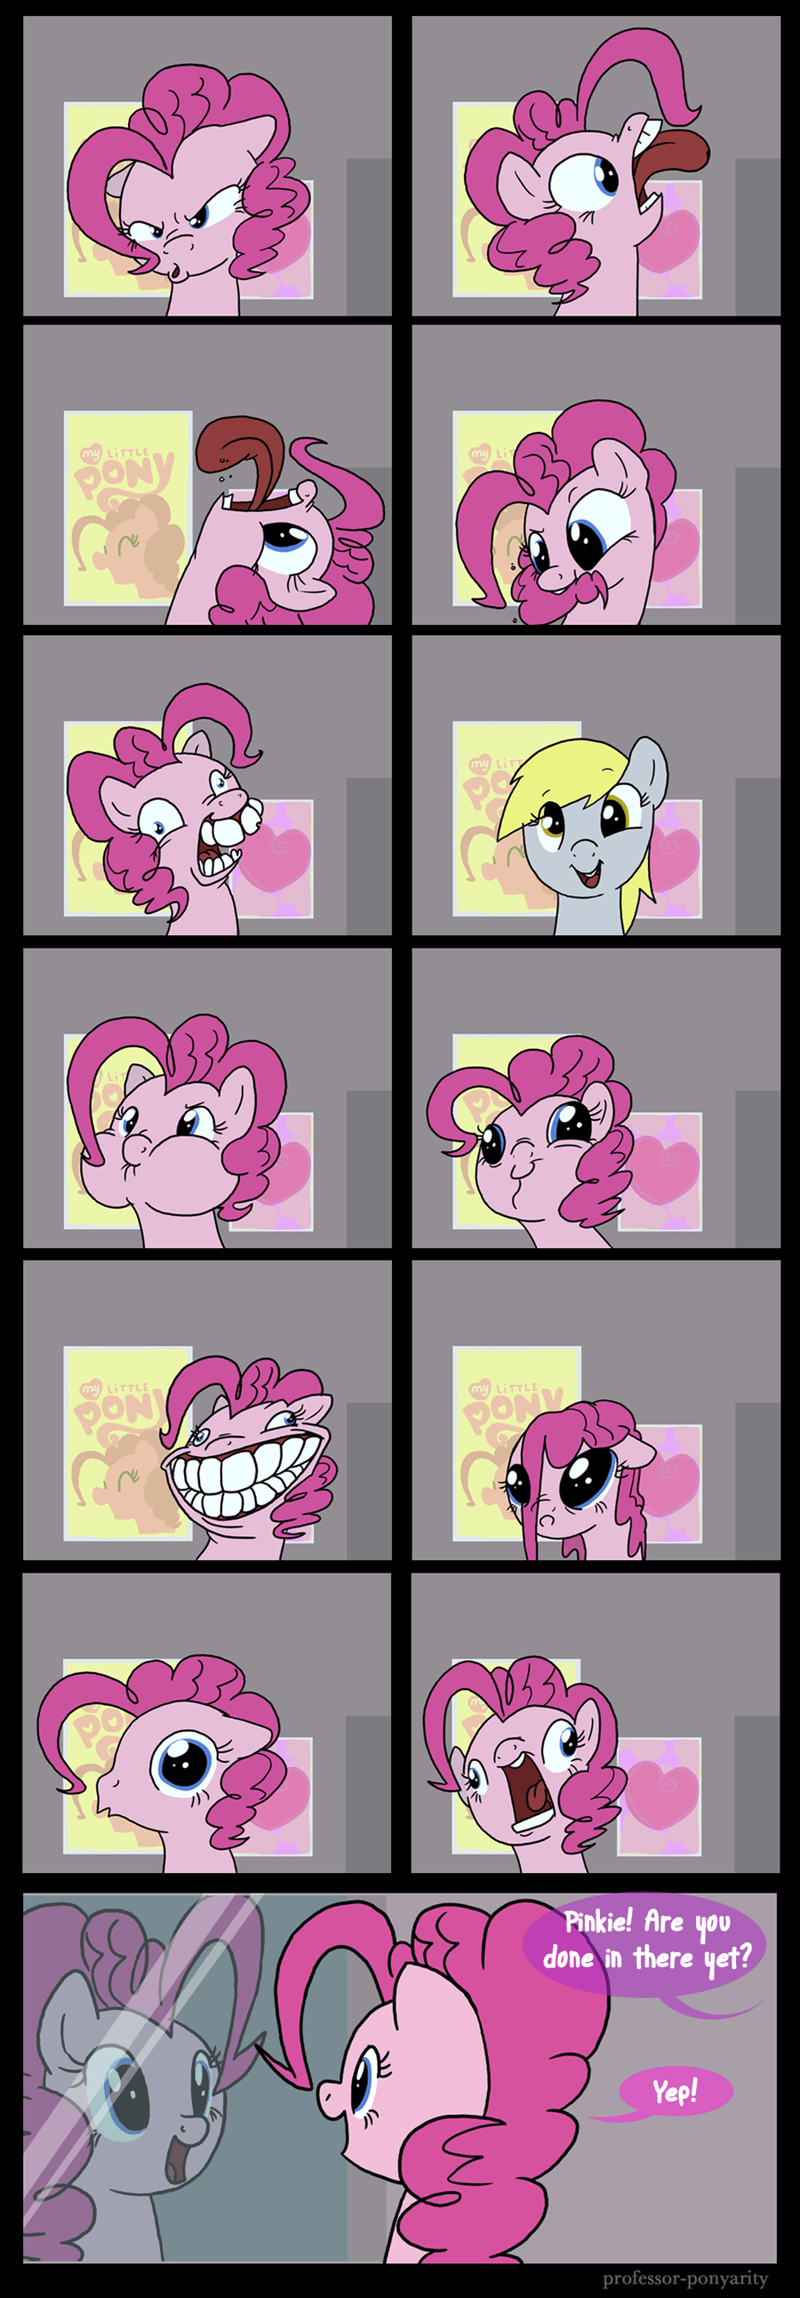 face derpy hooves pinkie pie comic - 8806361088